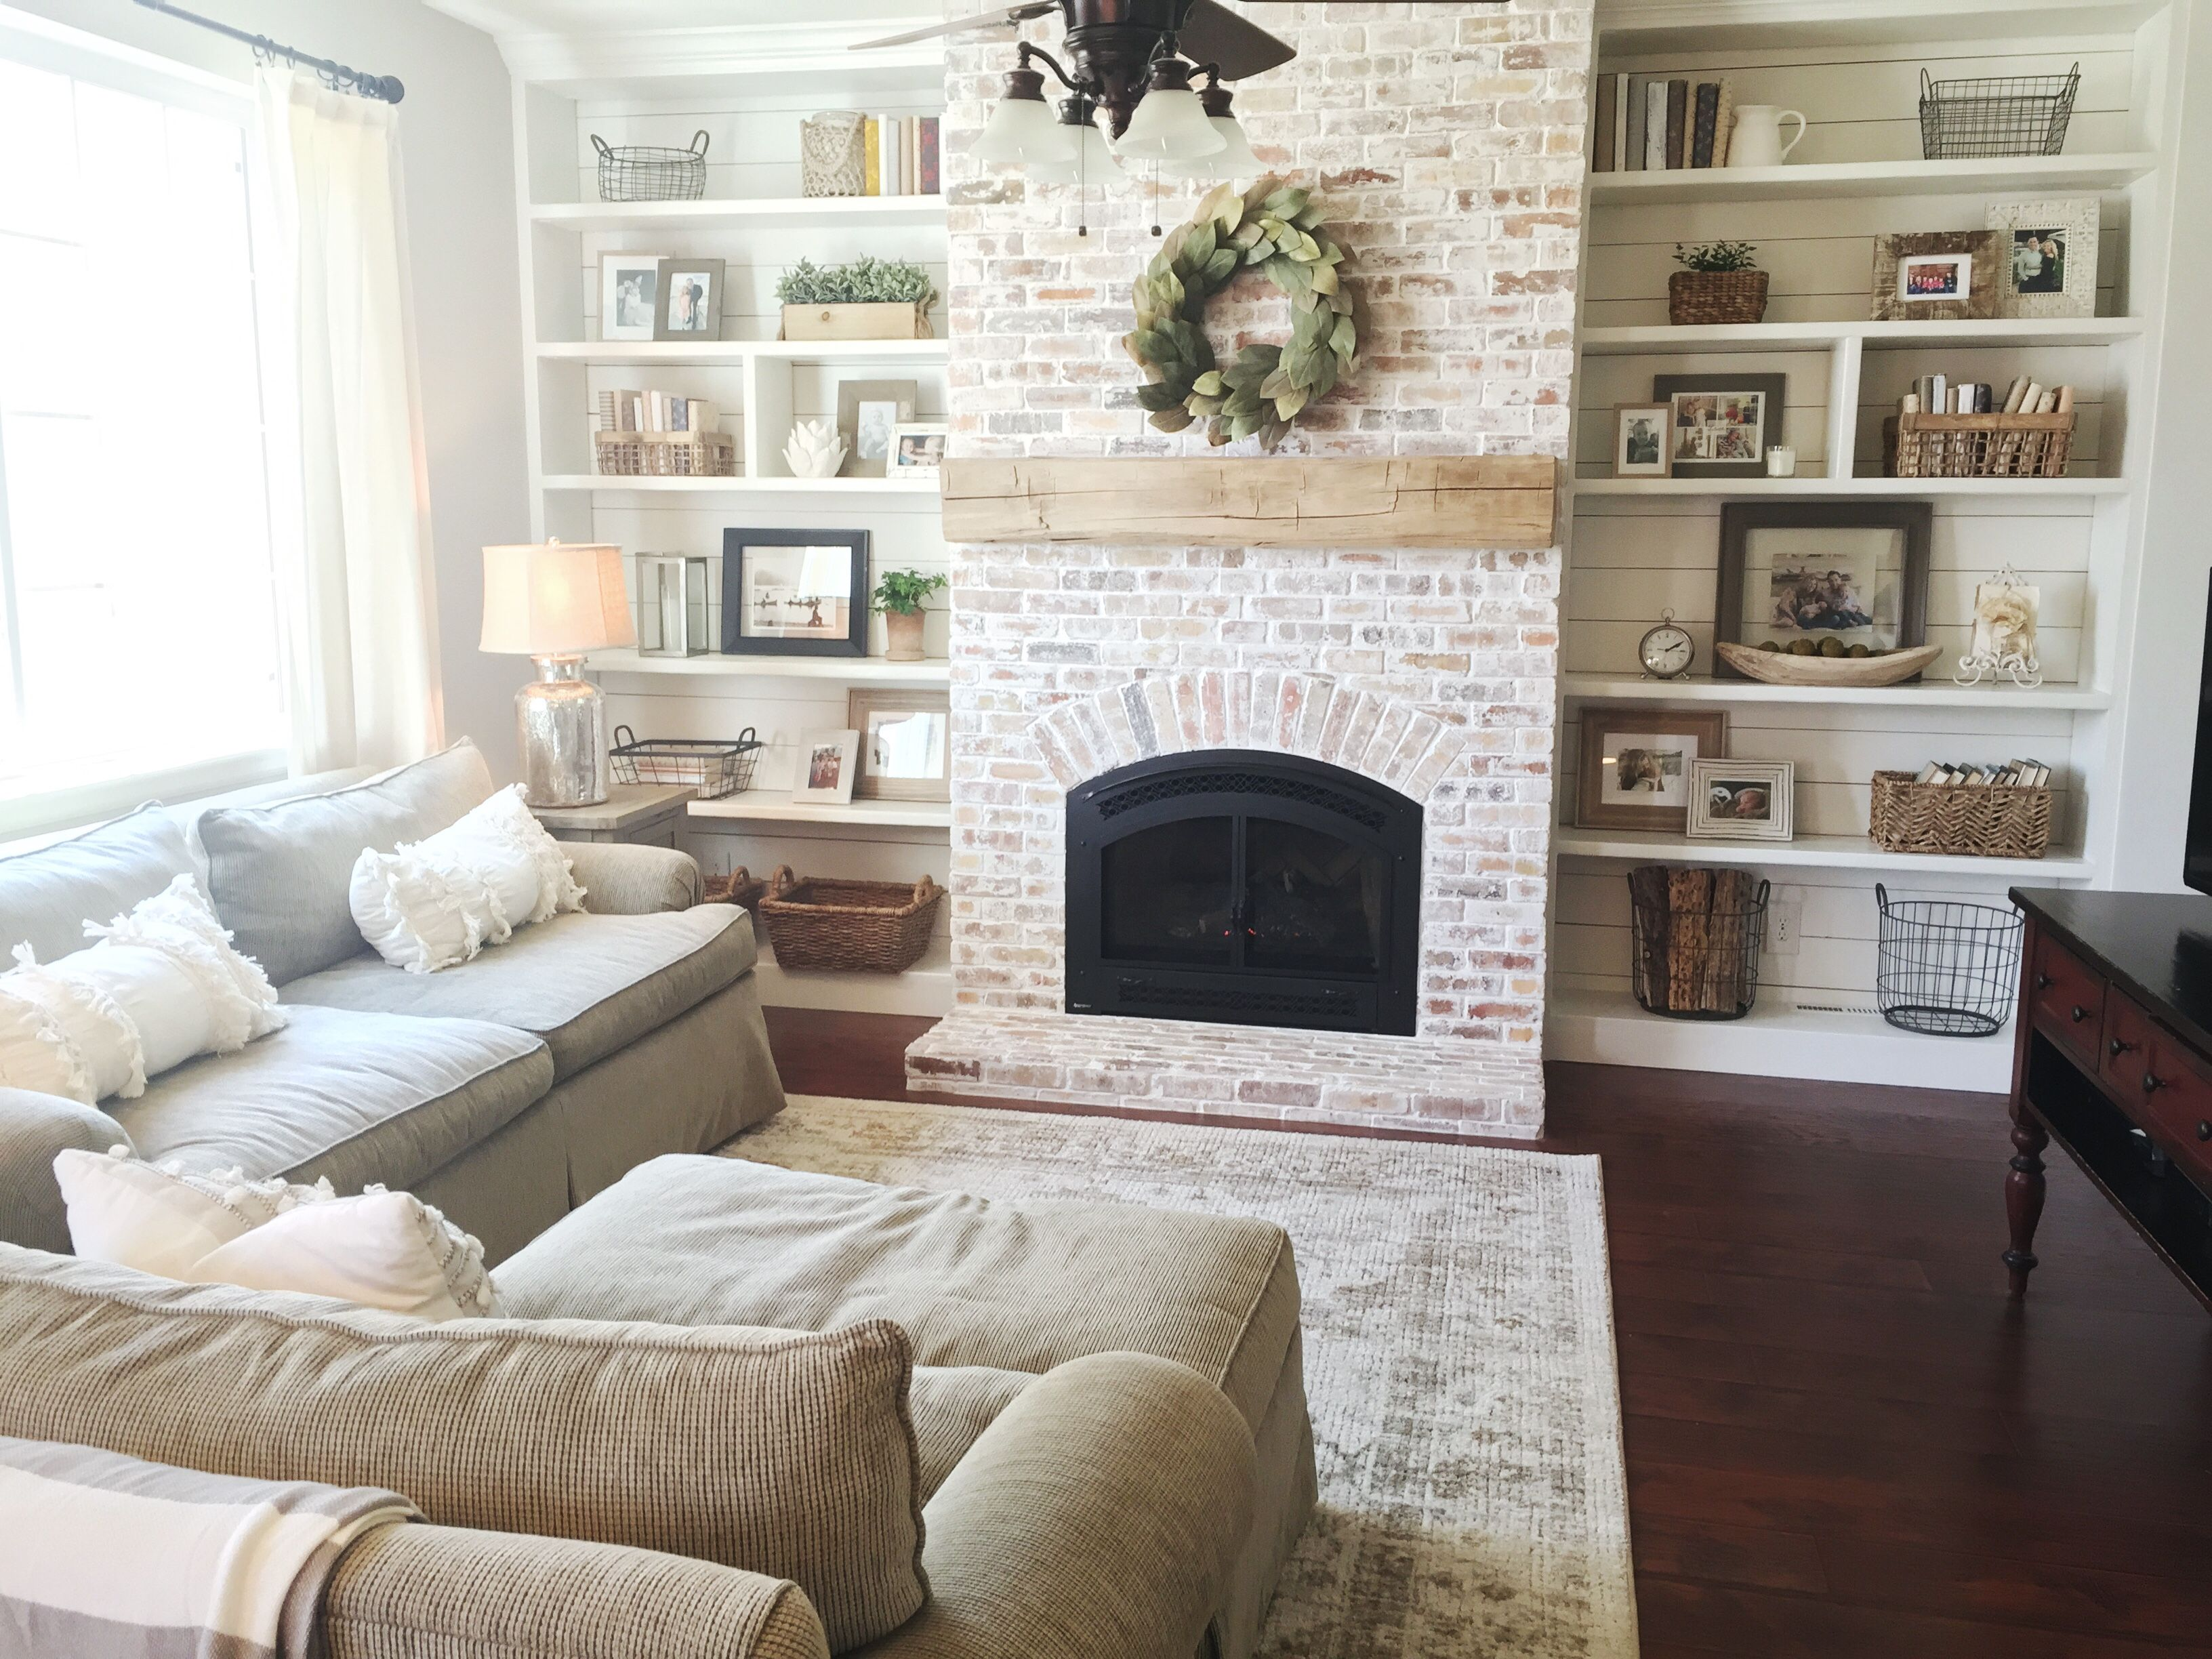 White Fireplace Ideas Lovely Built Ins Shiplap Whitewash Brick Fireplace Bookshelf